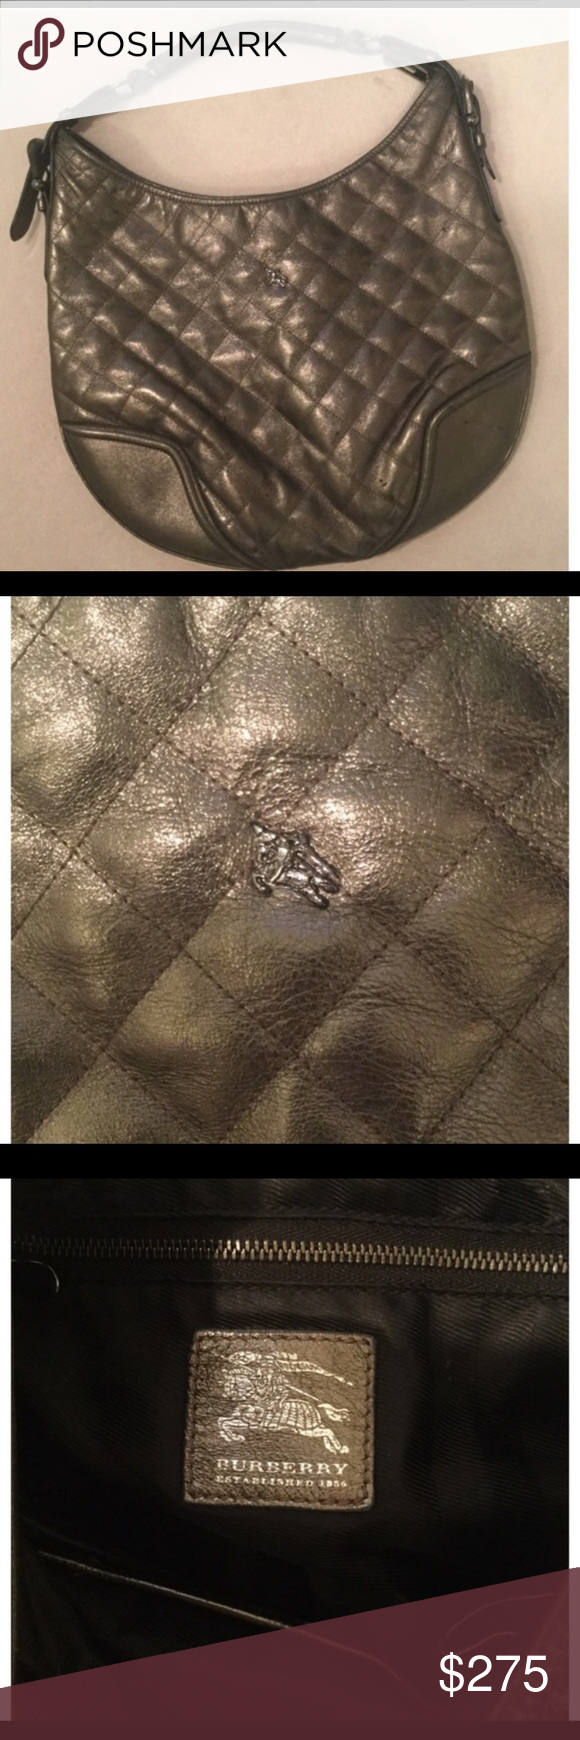 Burberry Hoxton quilted leather hobo metallic bag  e53241e1dce2d